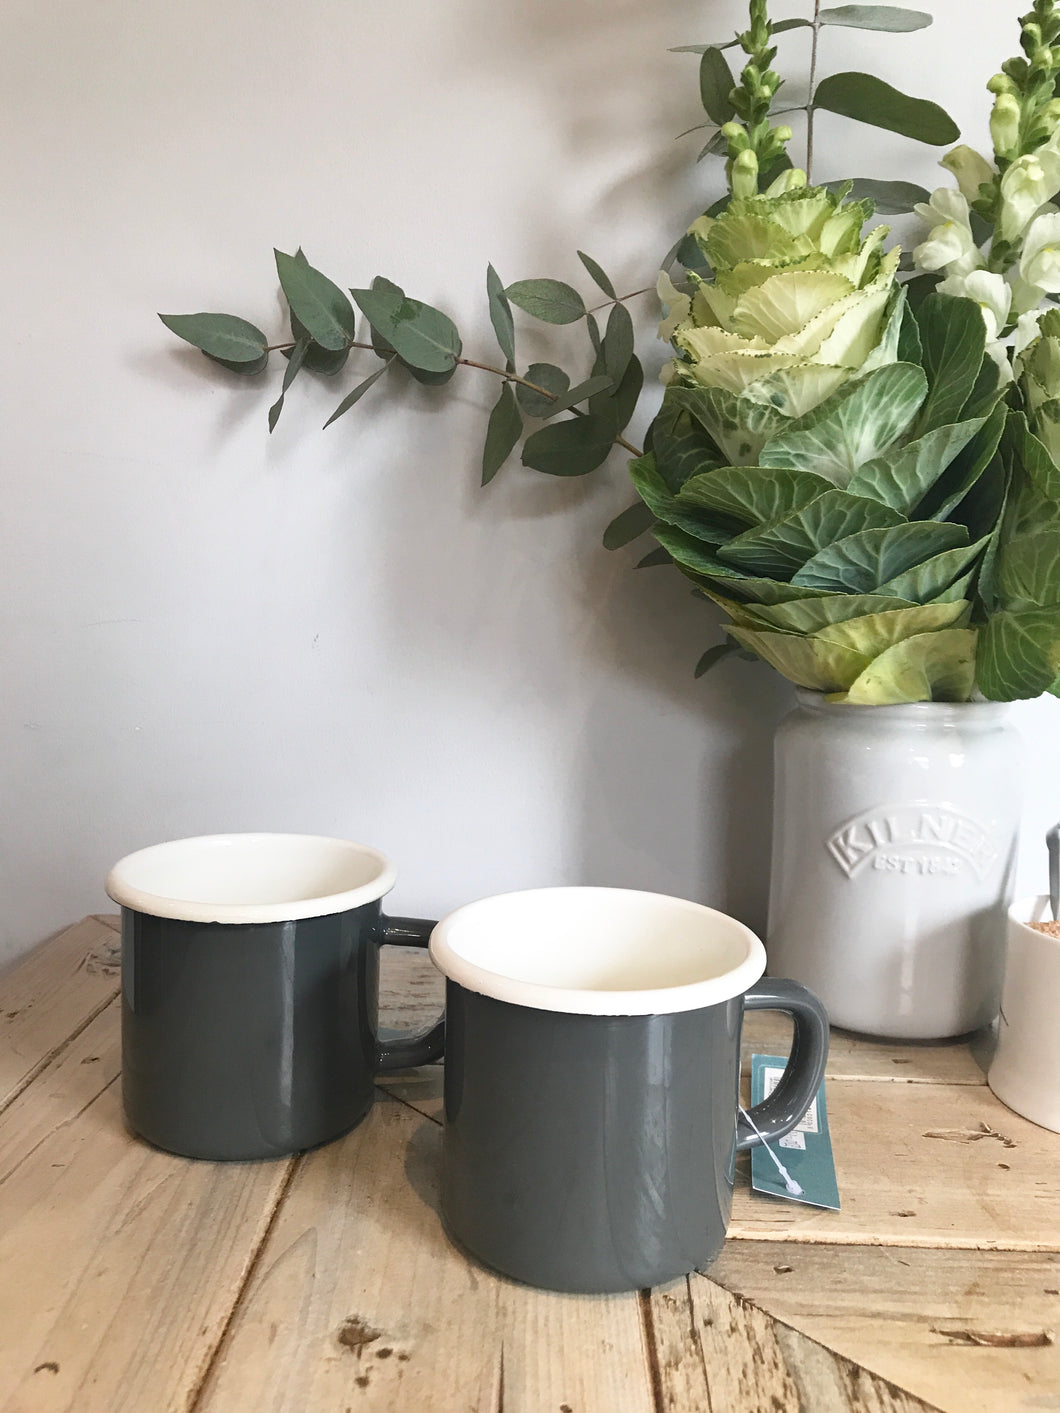 SALE - Charcoal enamel mugs - collection only